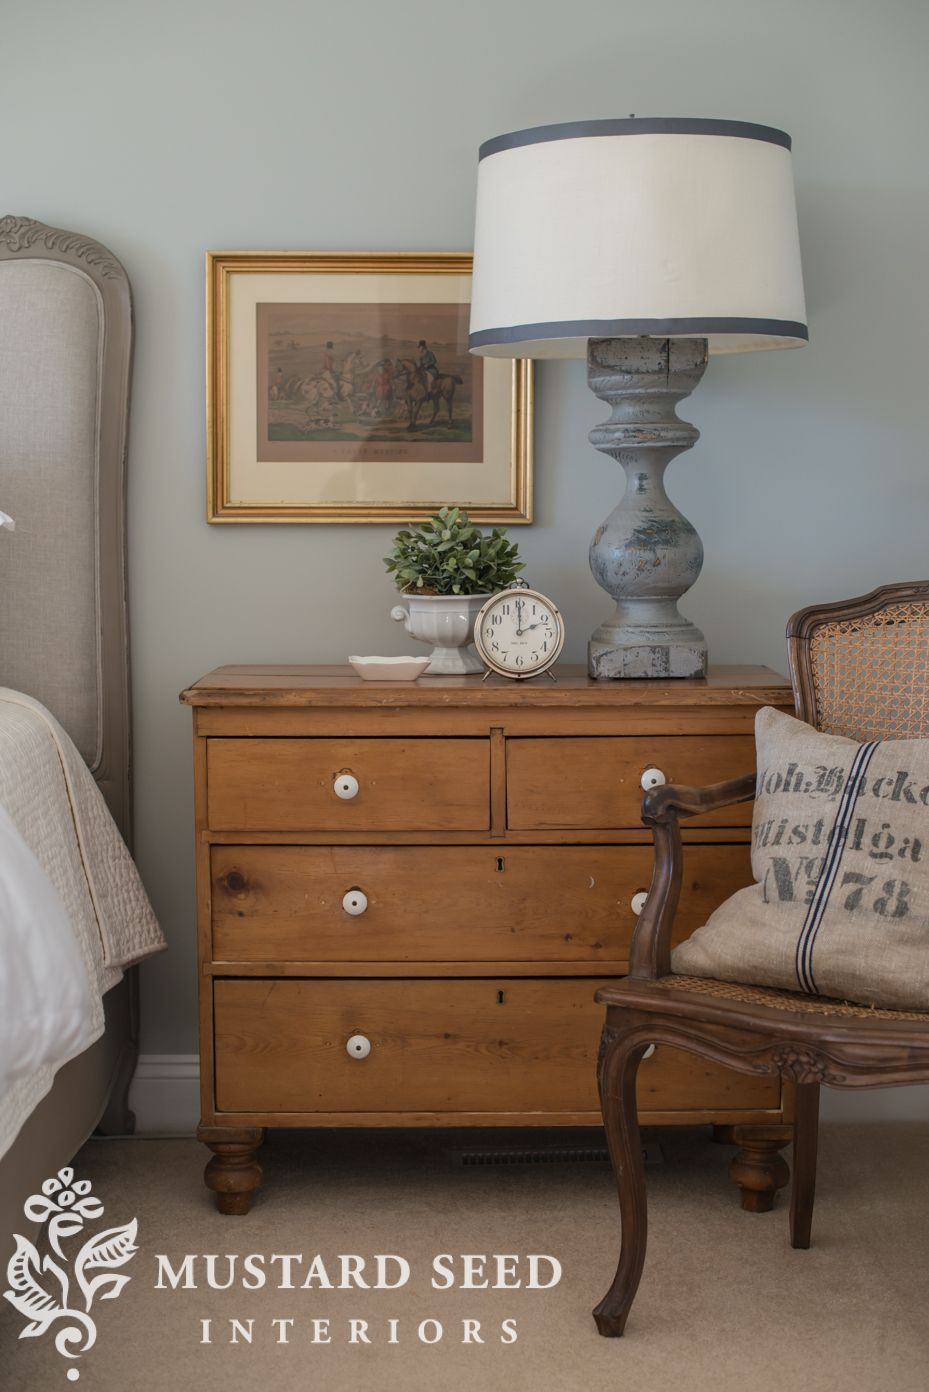 Antique Pine Chest With Images Remodel Bedroom Bedroom Furniture Sets Pine Bedroom Furniture